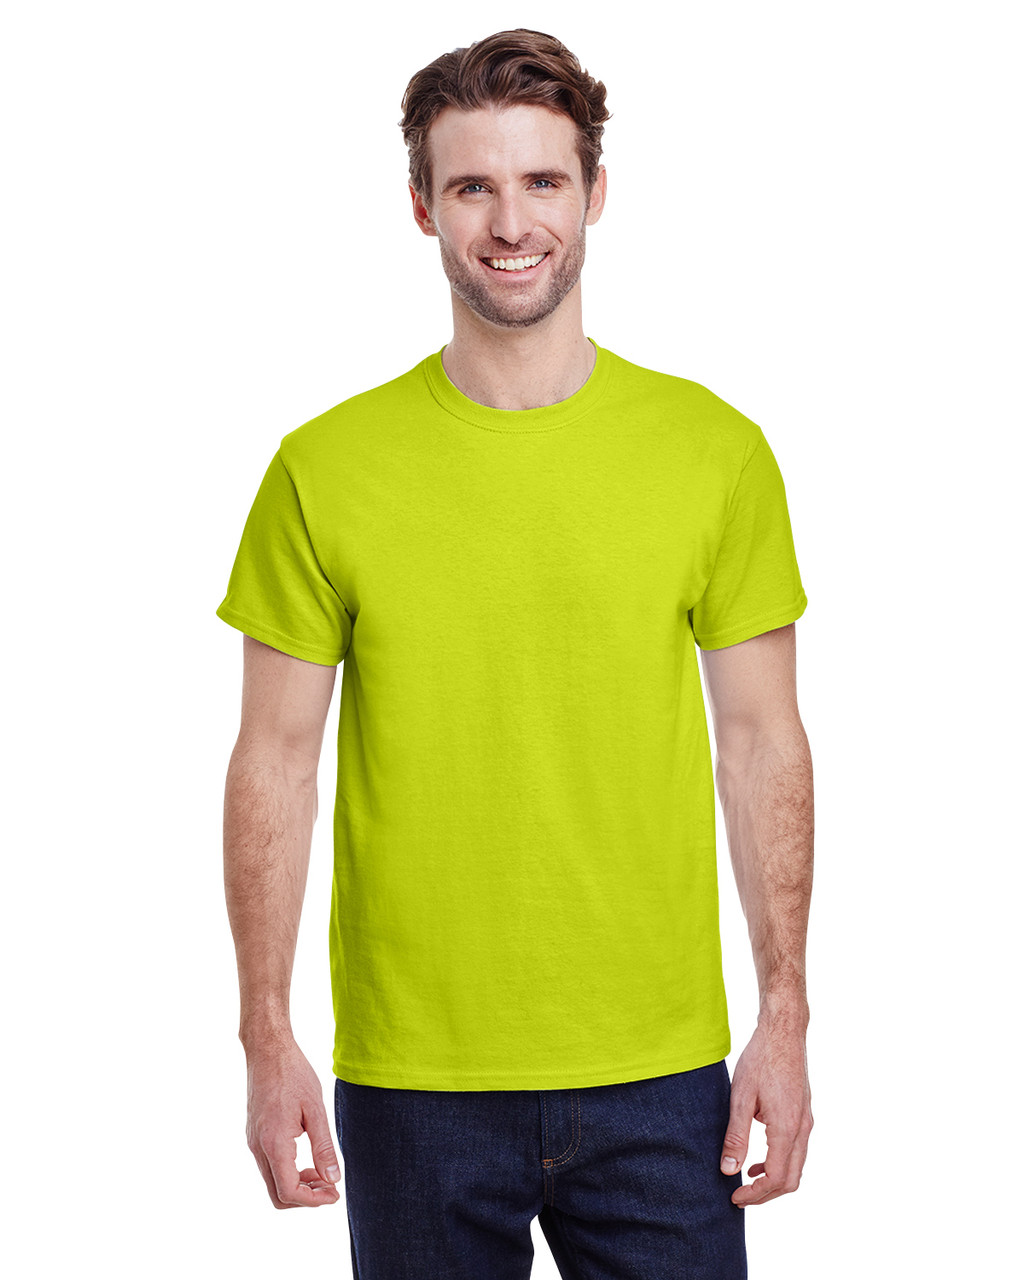 GILDAN - Heavy Cotton 100% Cotton T-Shirt - 5.3 oz. -INCLUDES Front & Back Imprinted in One Color Ink